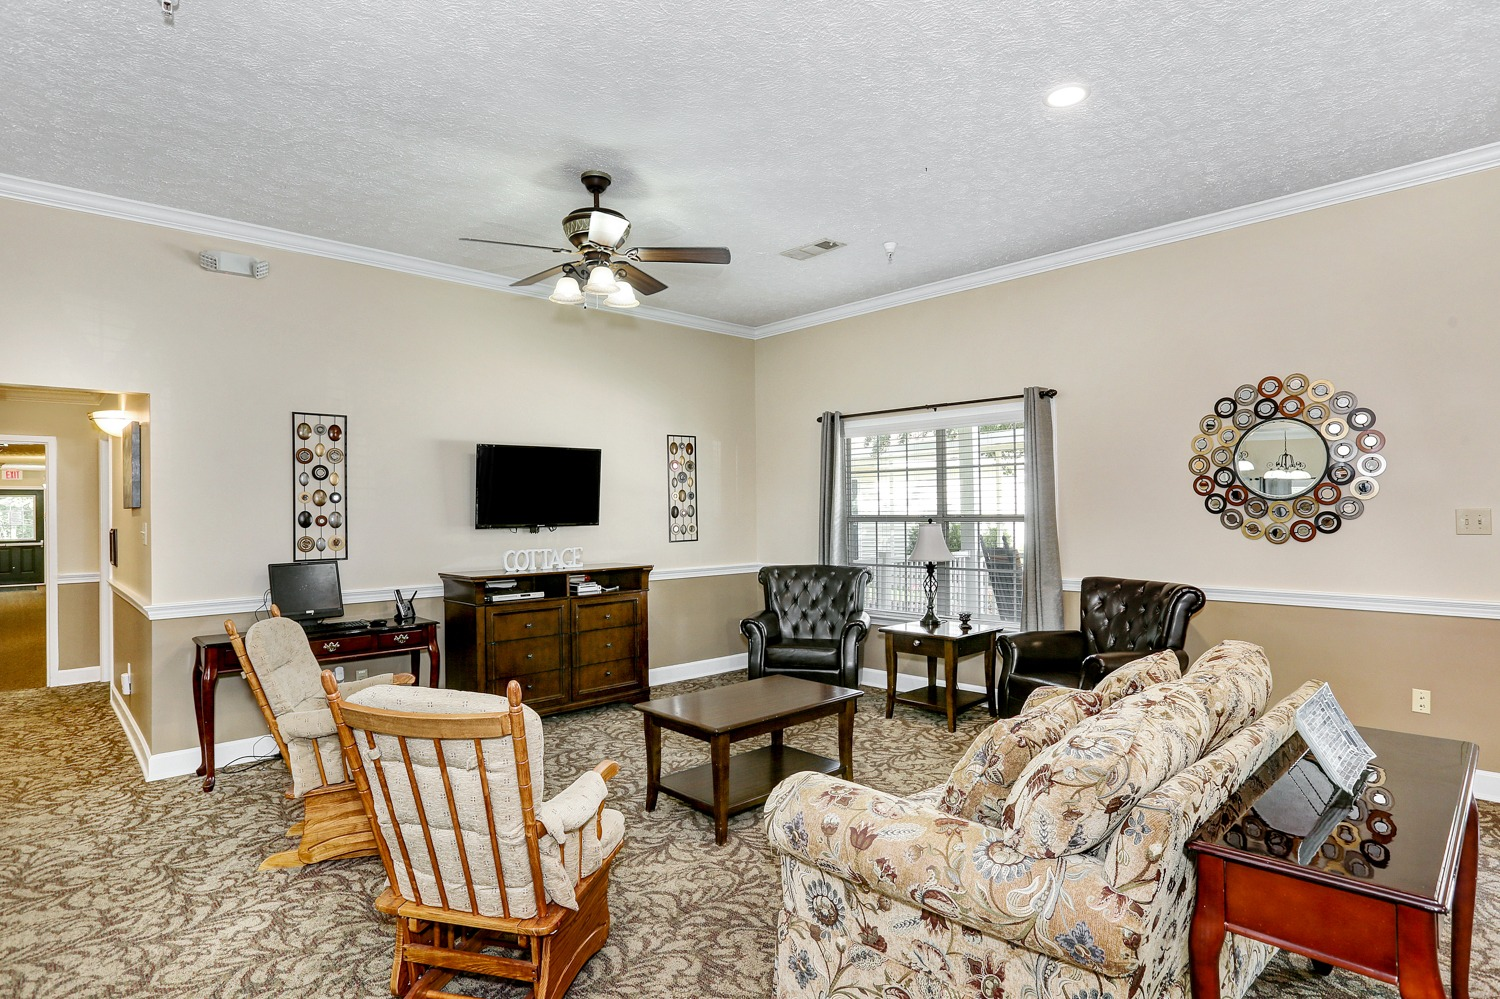 Country Cottage Decatur - Interior Living Room Common Area